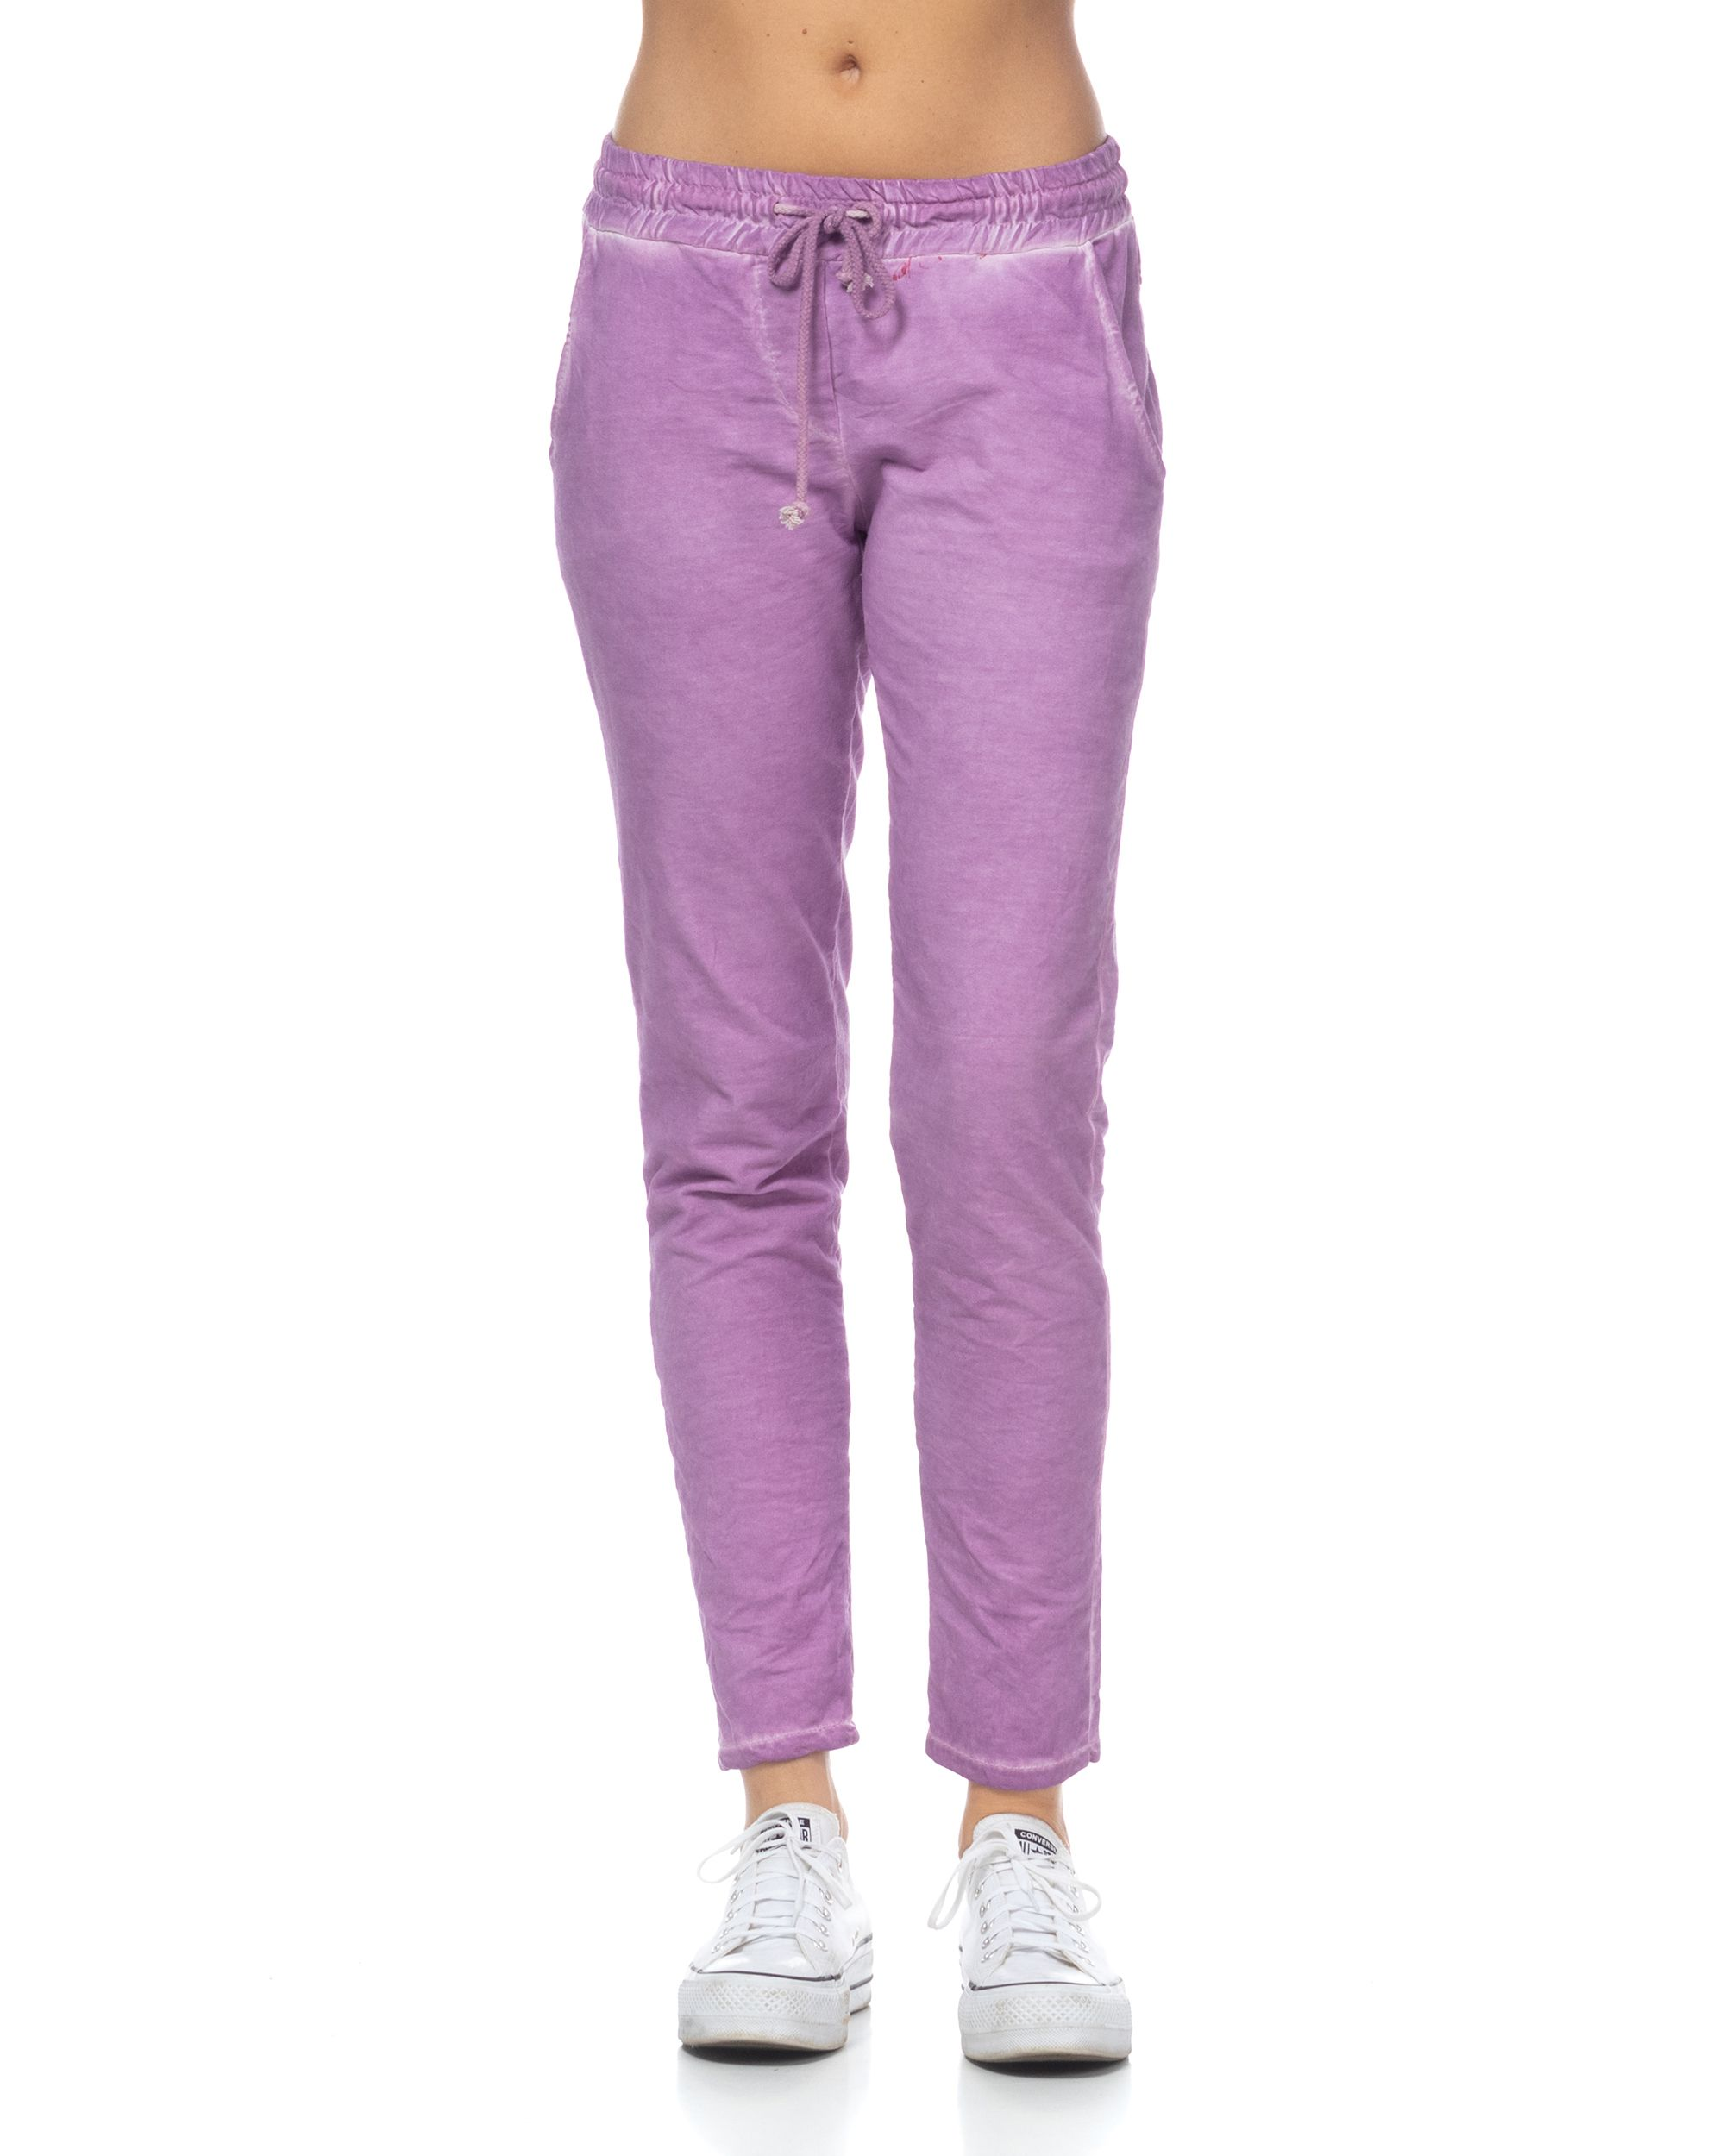 Sports pants with washed effect and elastic waist